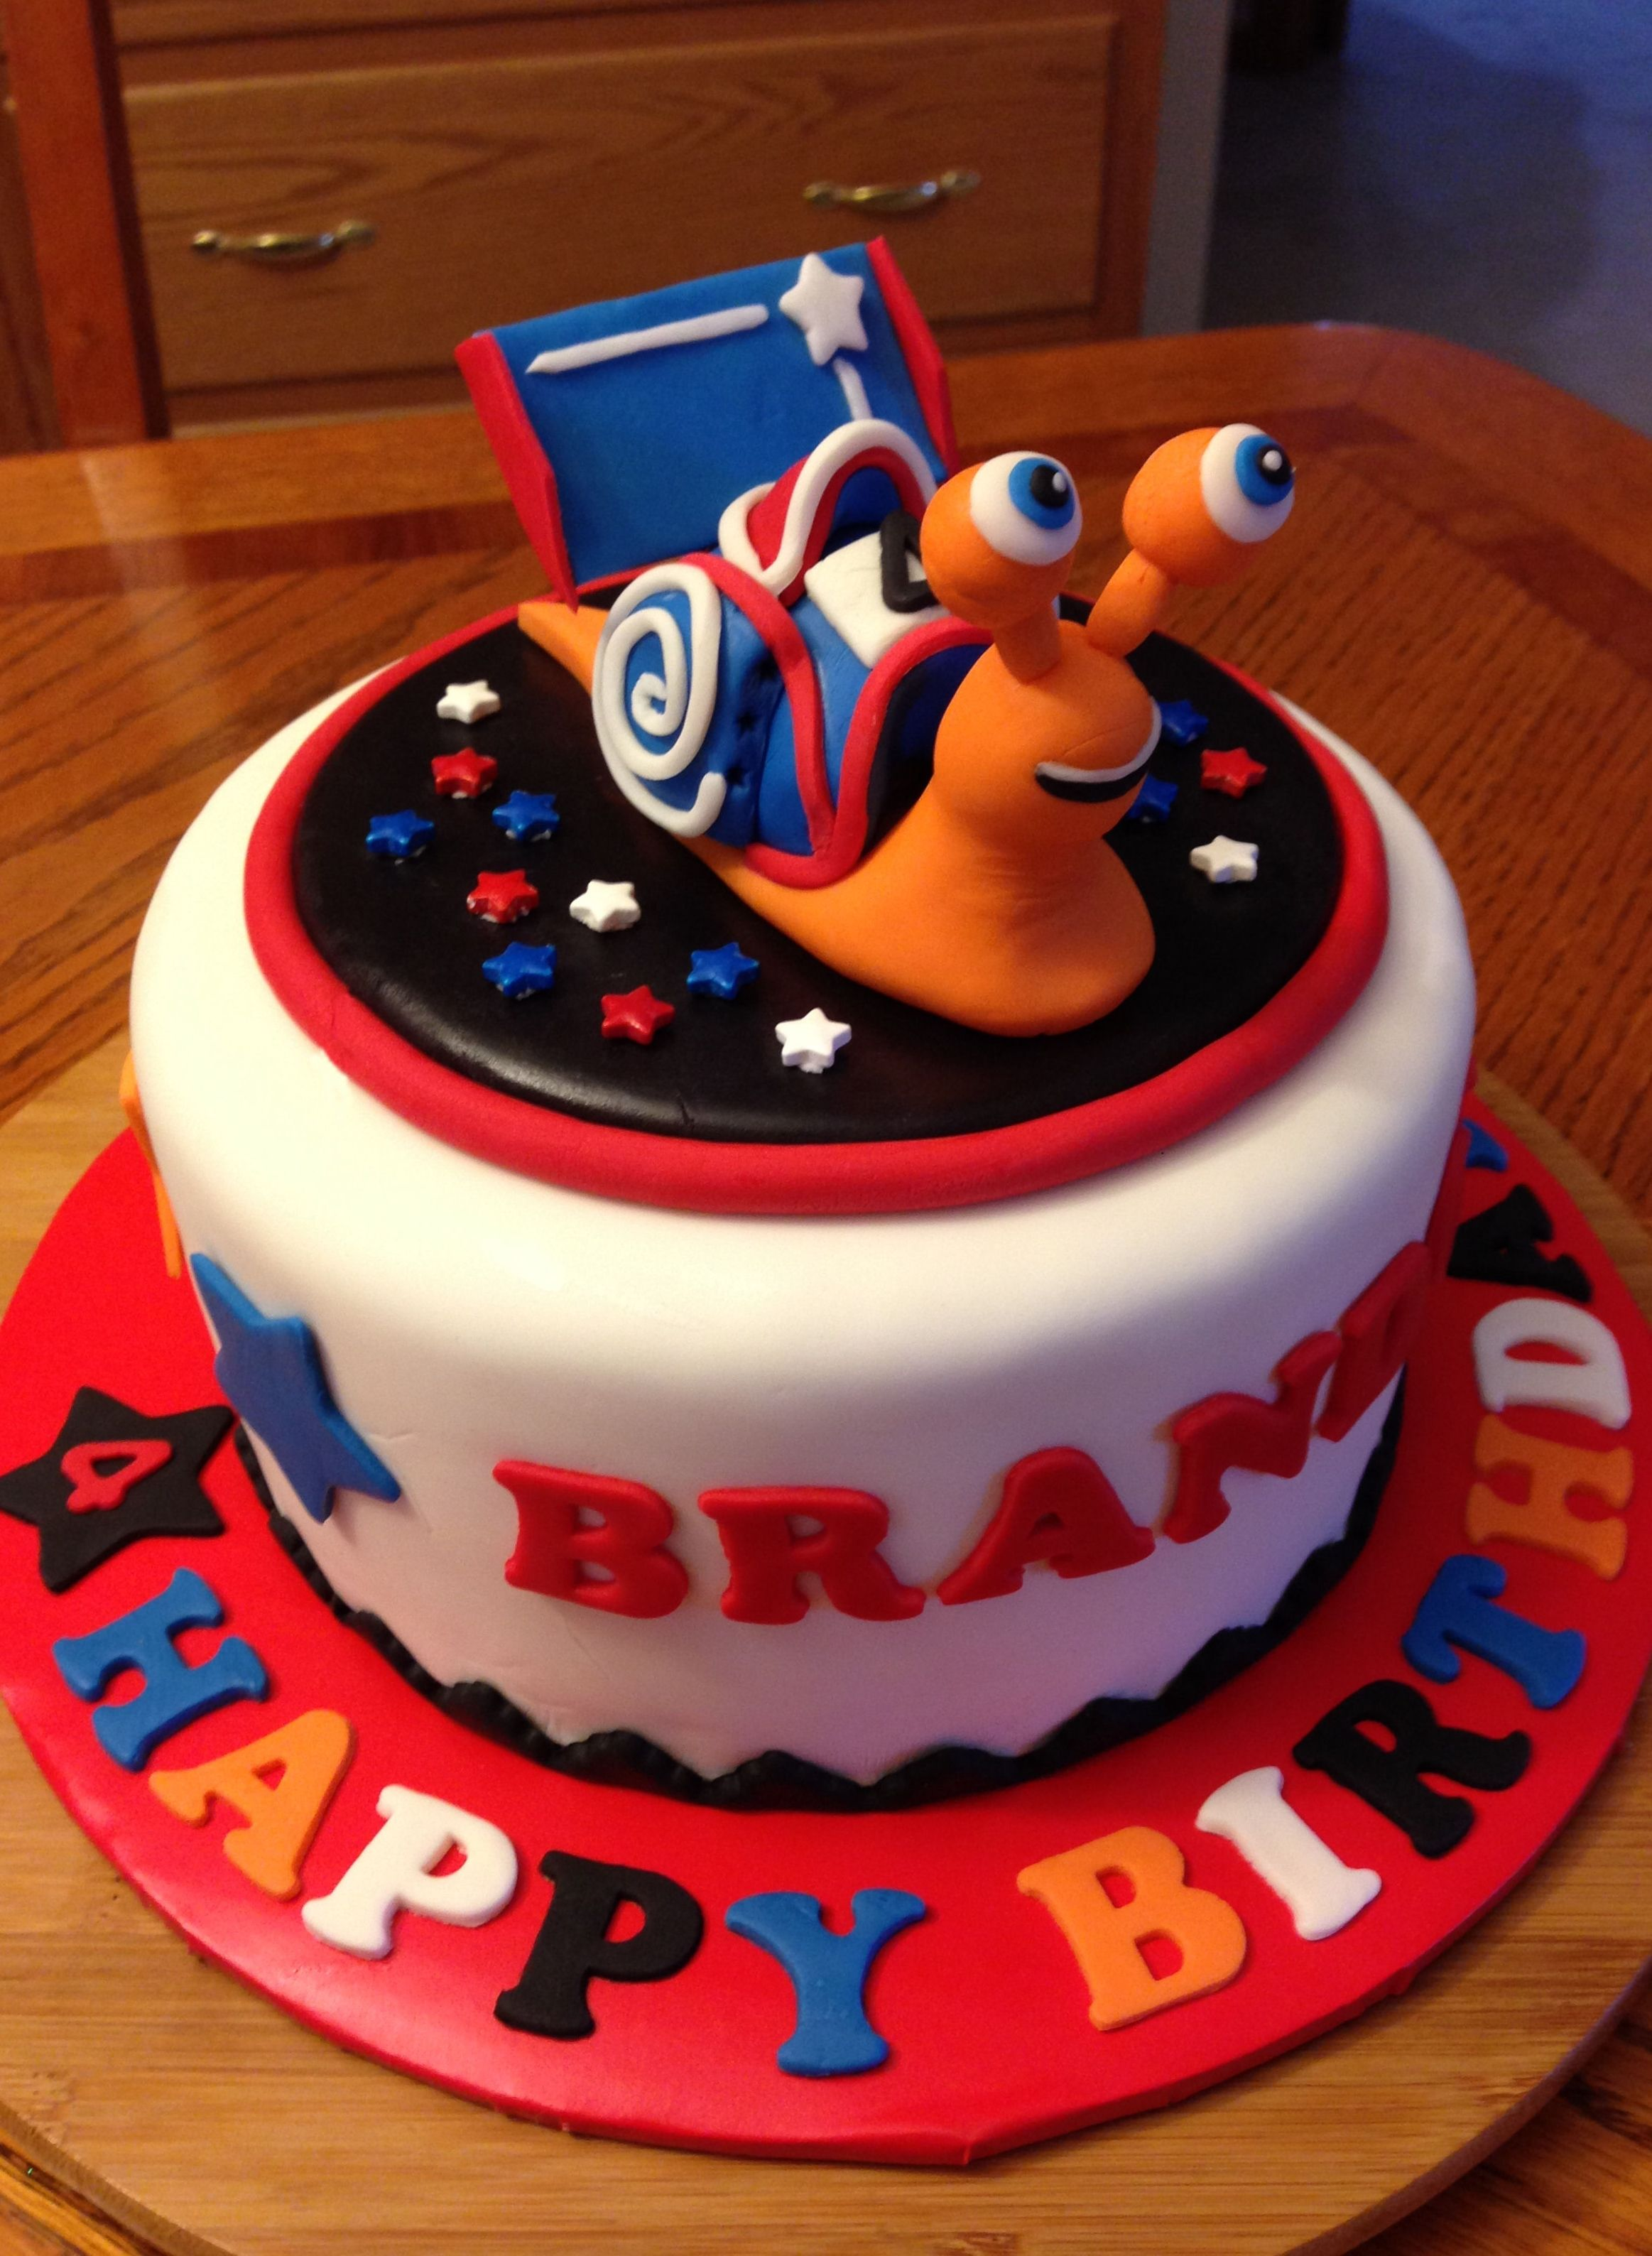 Turbo cake for my grandson.  The topper was challenging and fun to make!